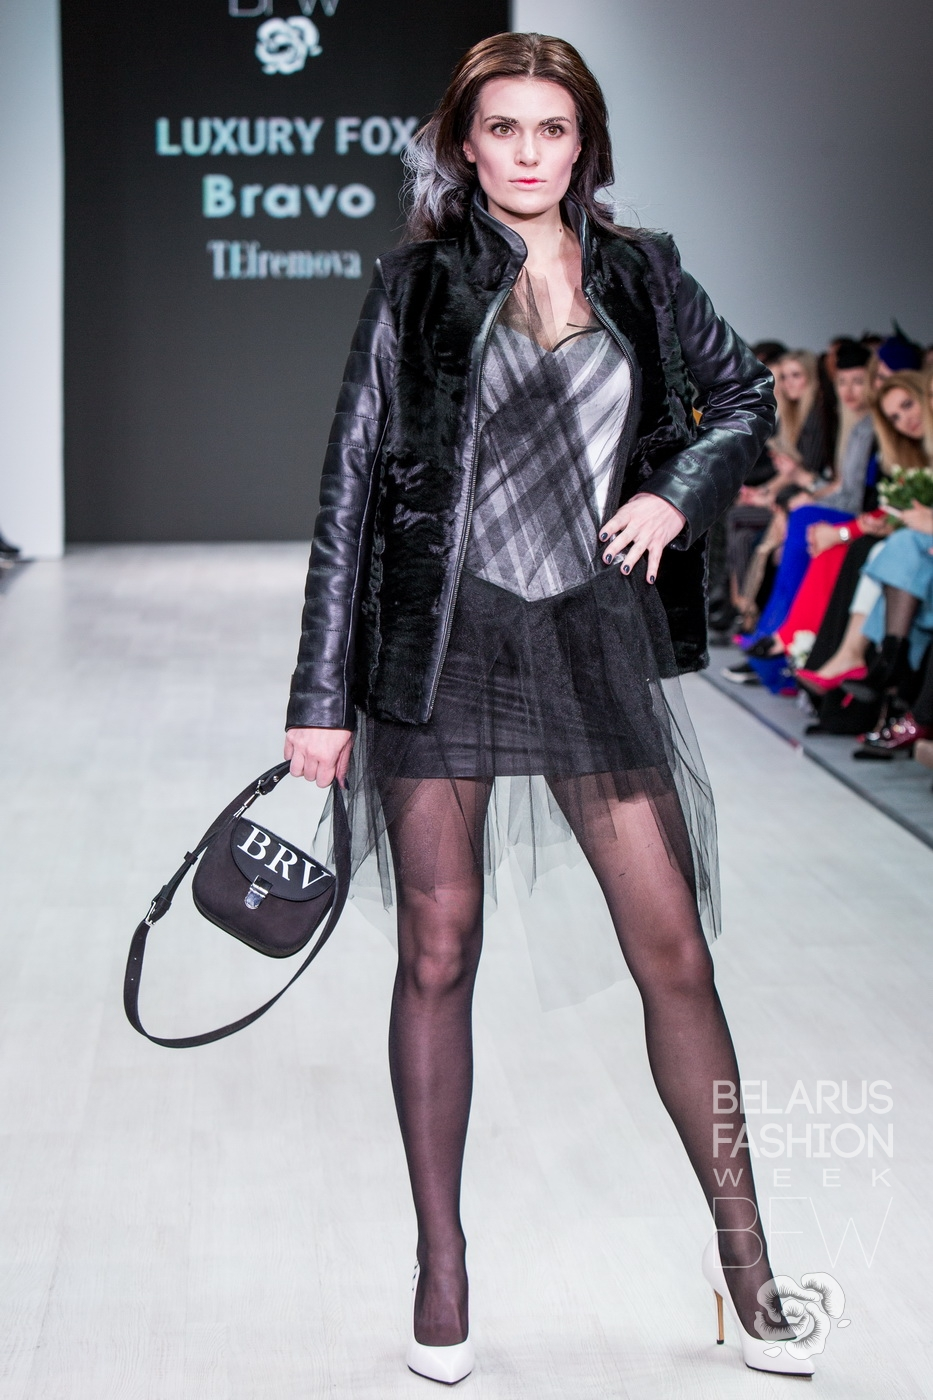 T.Efremova Belarus Fashion Week FW 2019-20